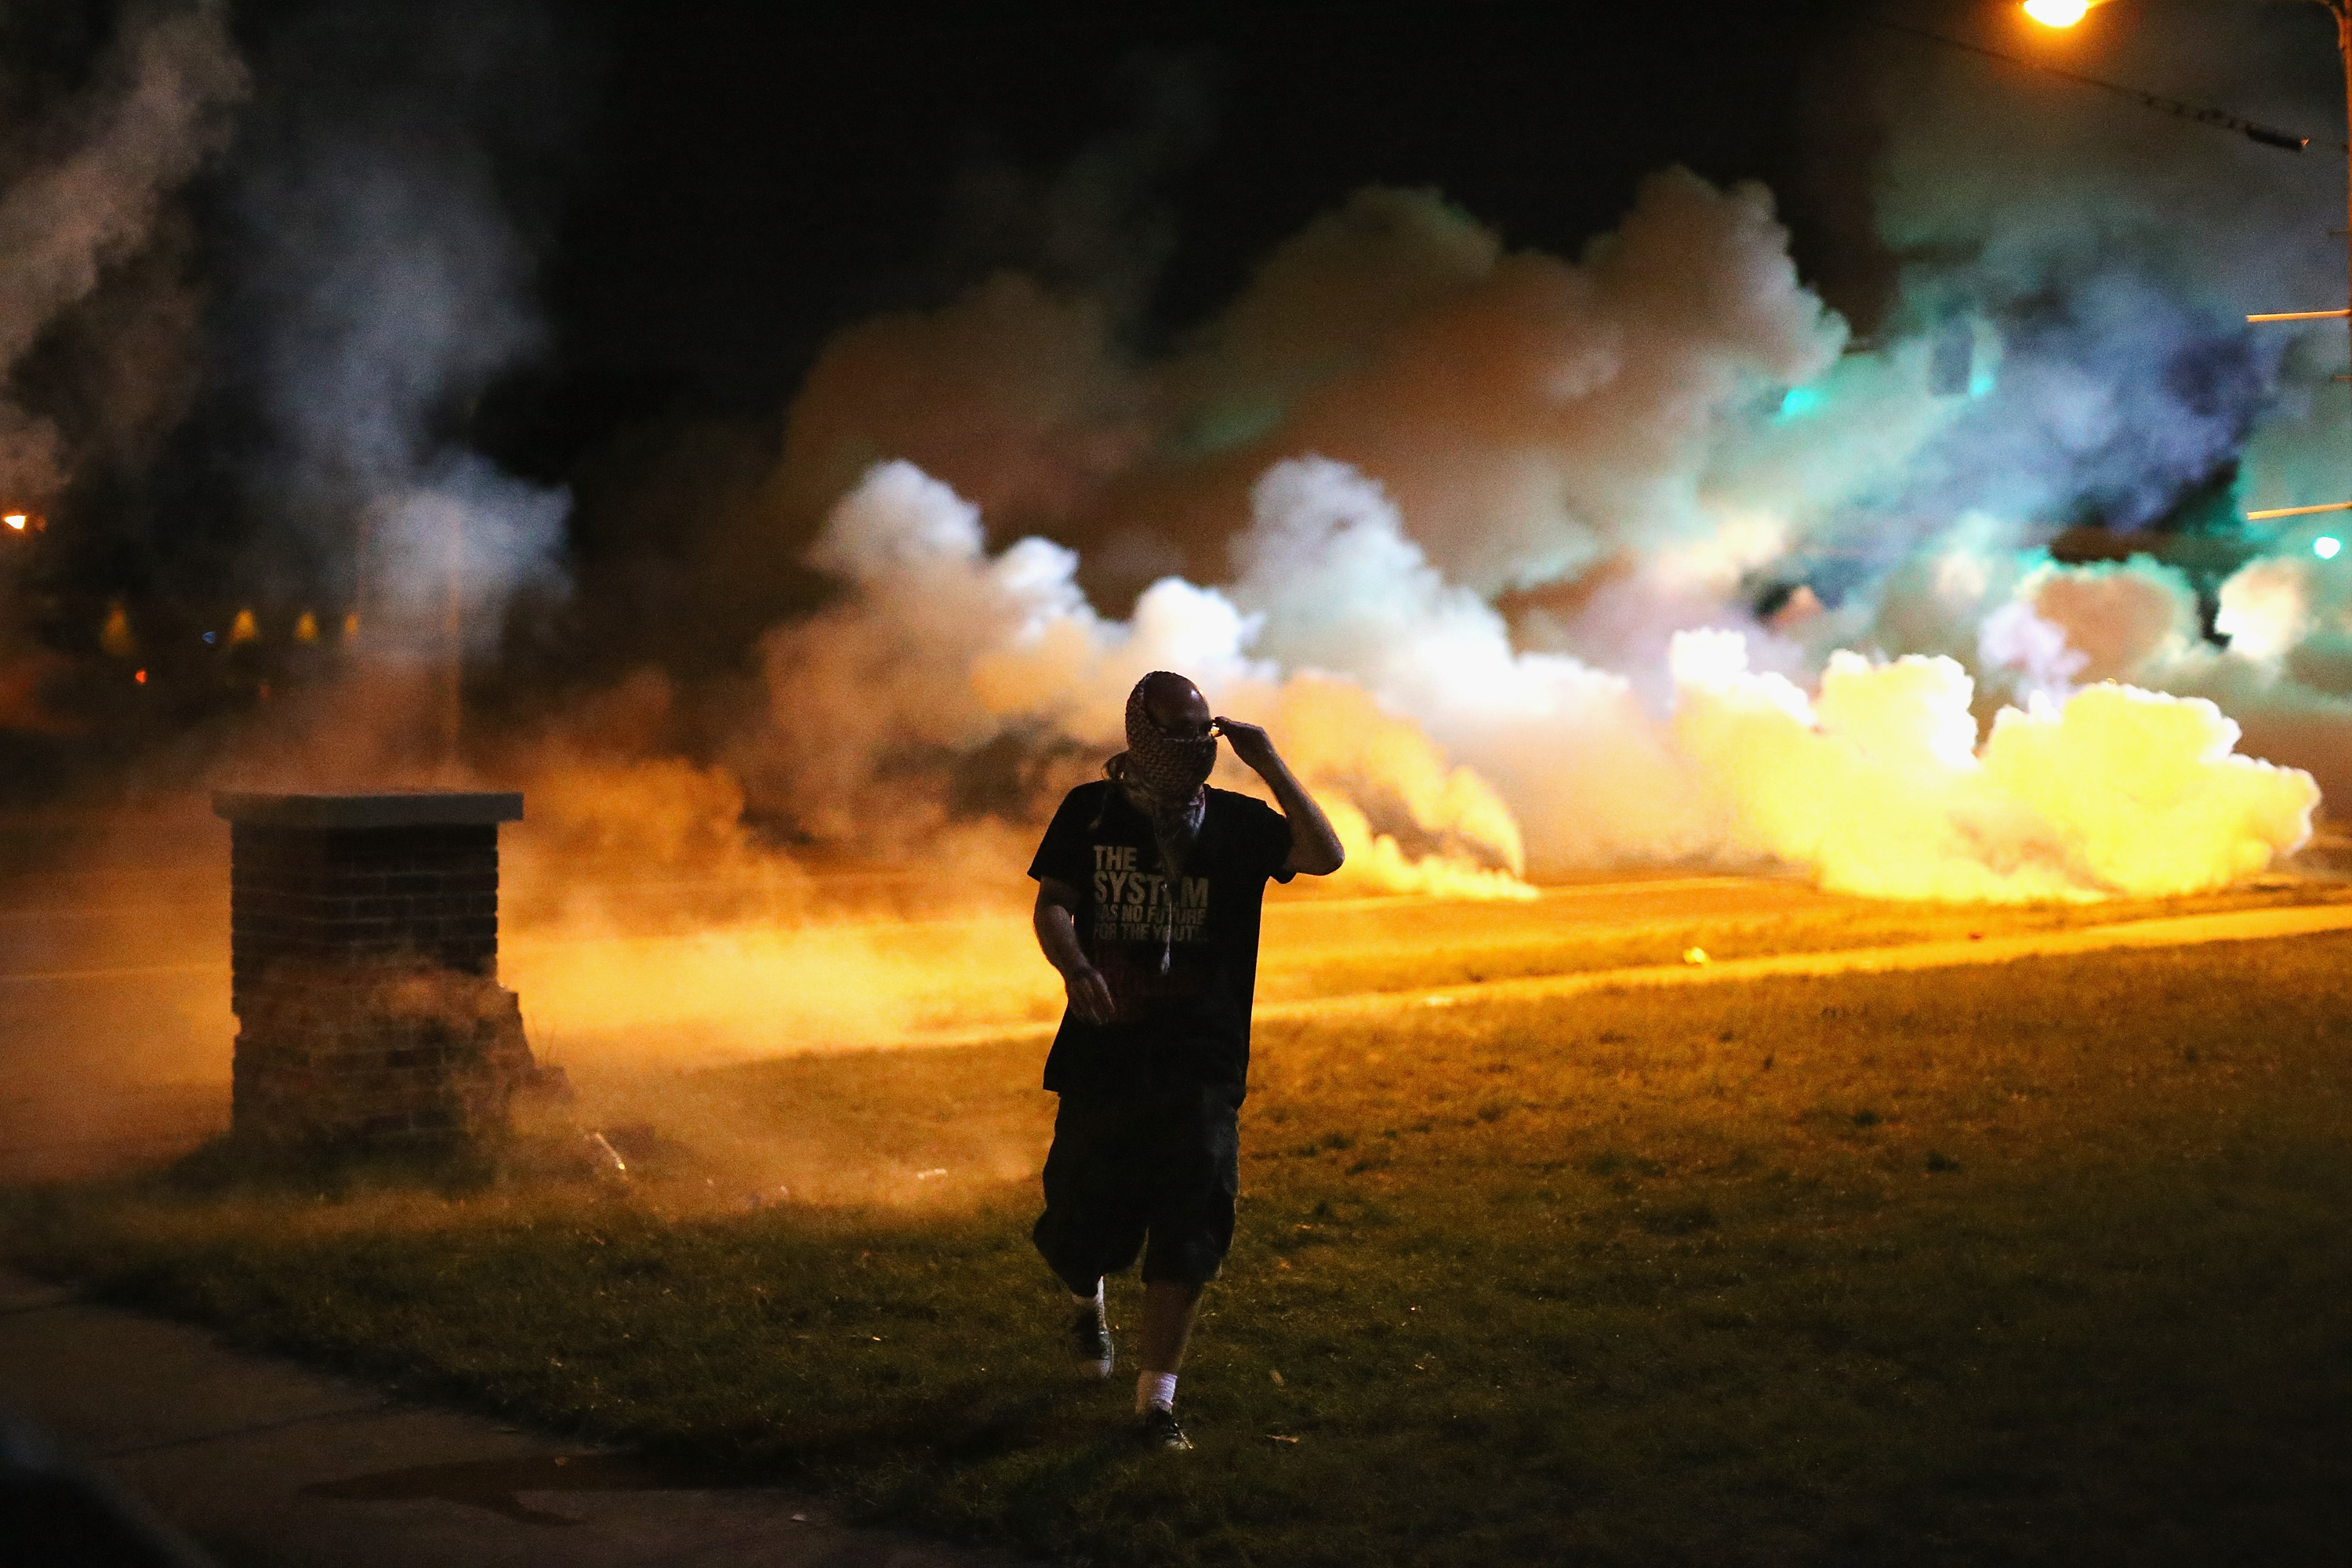 Demonstrators, protesting the shooting death of teenager Michael Brown, flee as police shoot tear gas into the crowd of several hundred after someone reportedly threw a bottle at the line of police on August 13, 2014 in Ferguson, Missouri.  (Photo by Scott Olson/Getty Images)